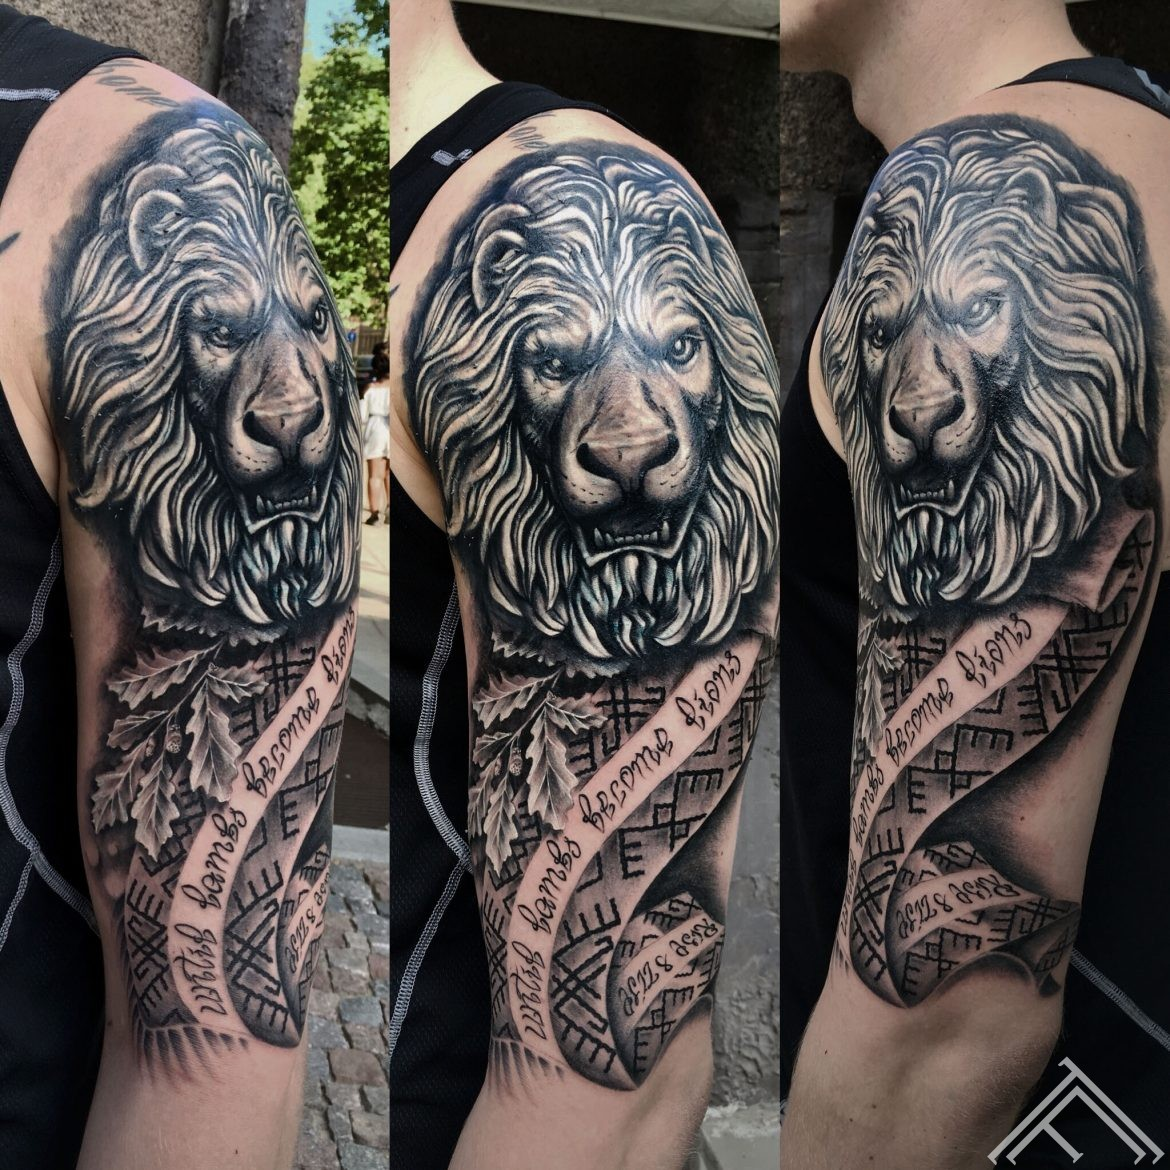 lion-latviansymbols-tattoo-latviesuzimes-tattoofrequency